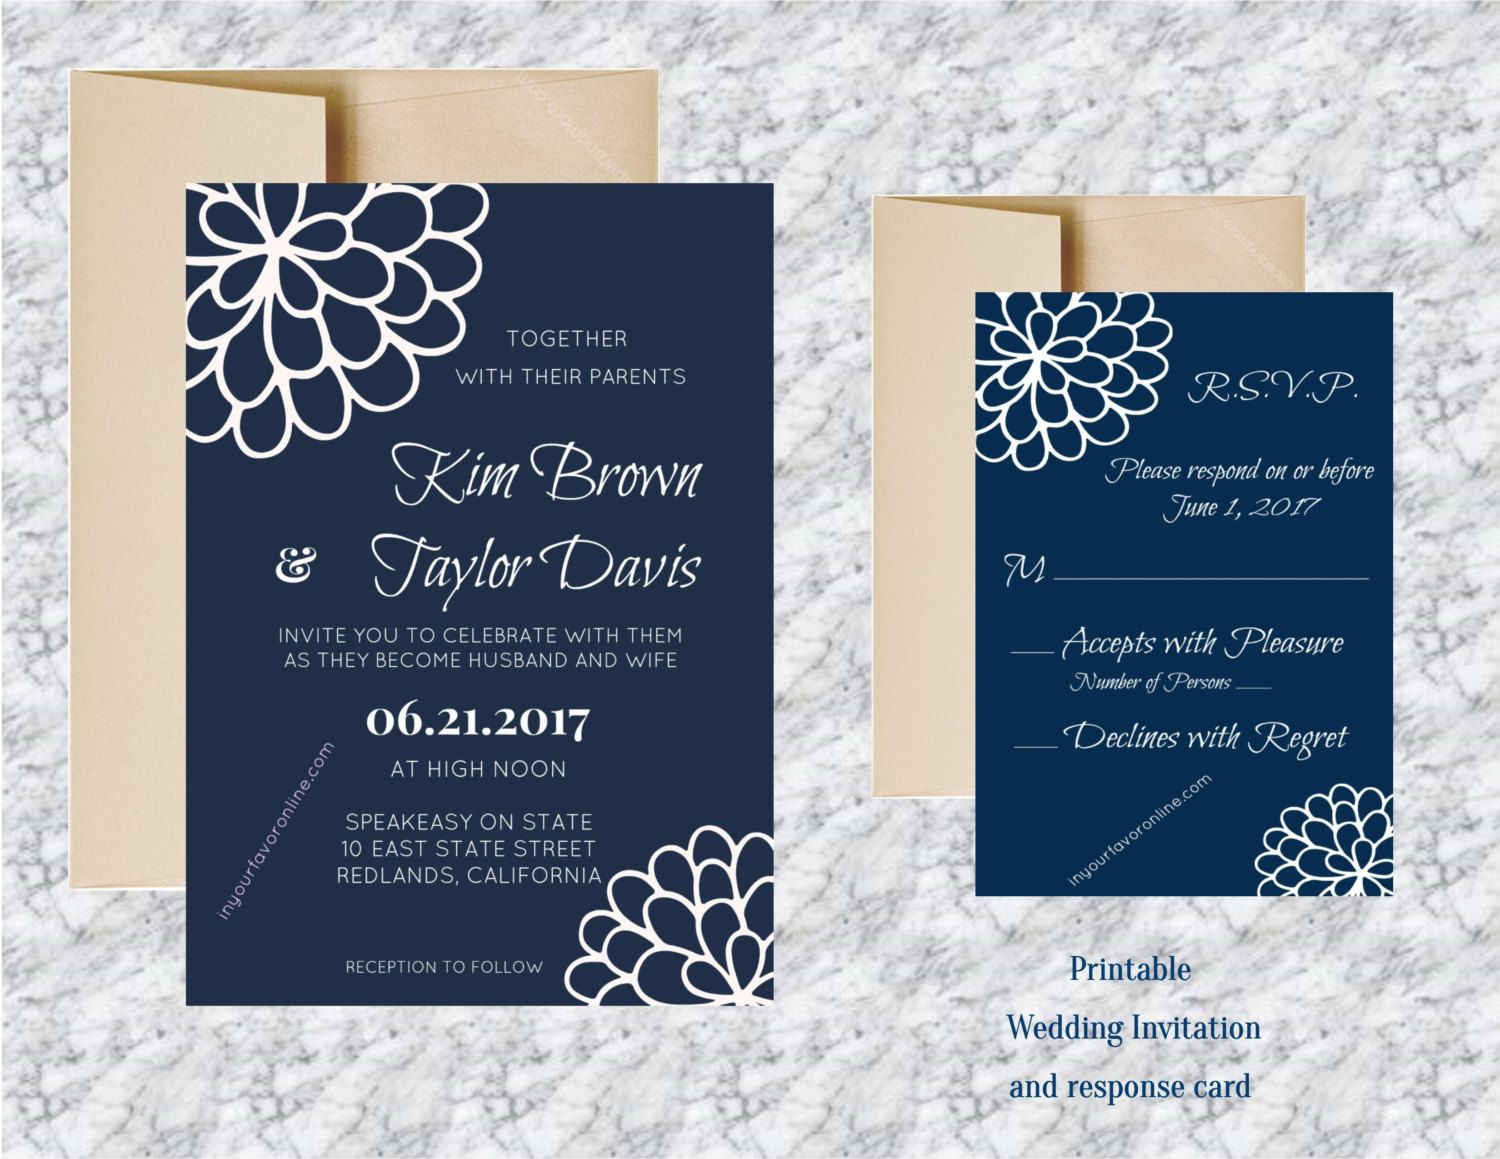 Printable Wedding Invitation and Response Card by